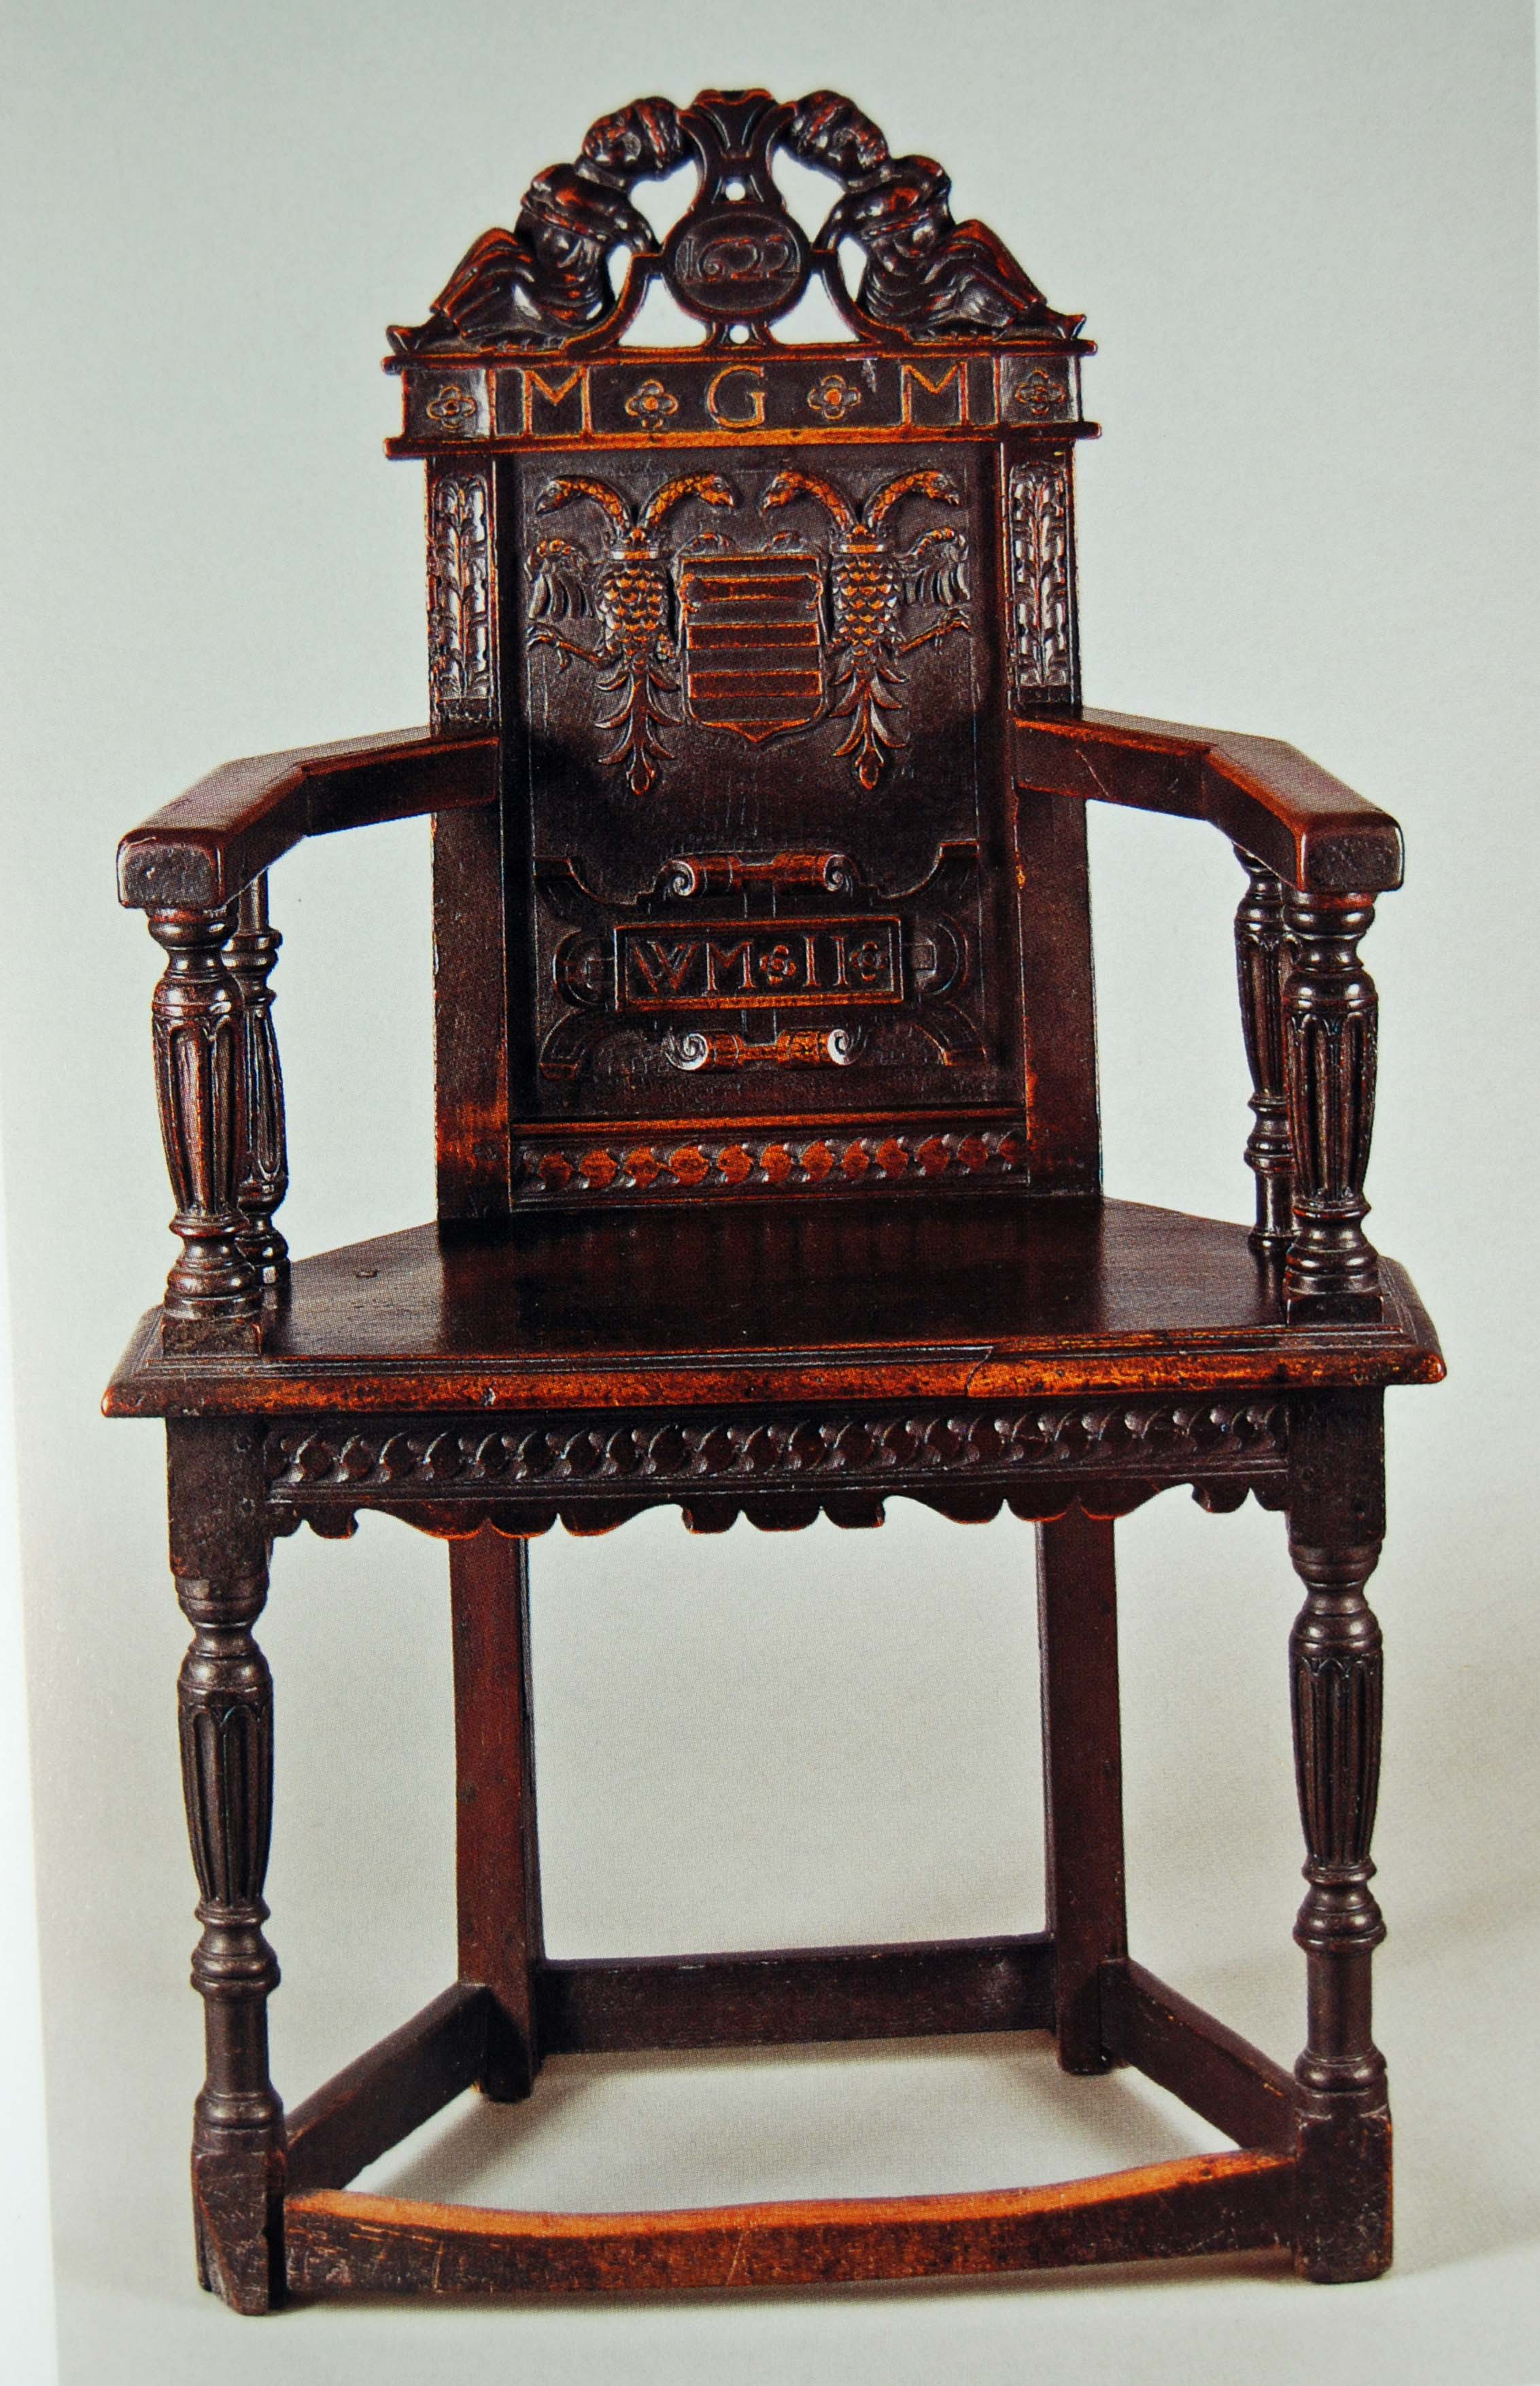 Amazing Wainscot Chair In Oak Wainscot Chair, Walnut